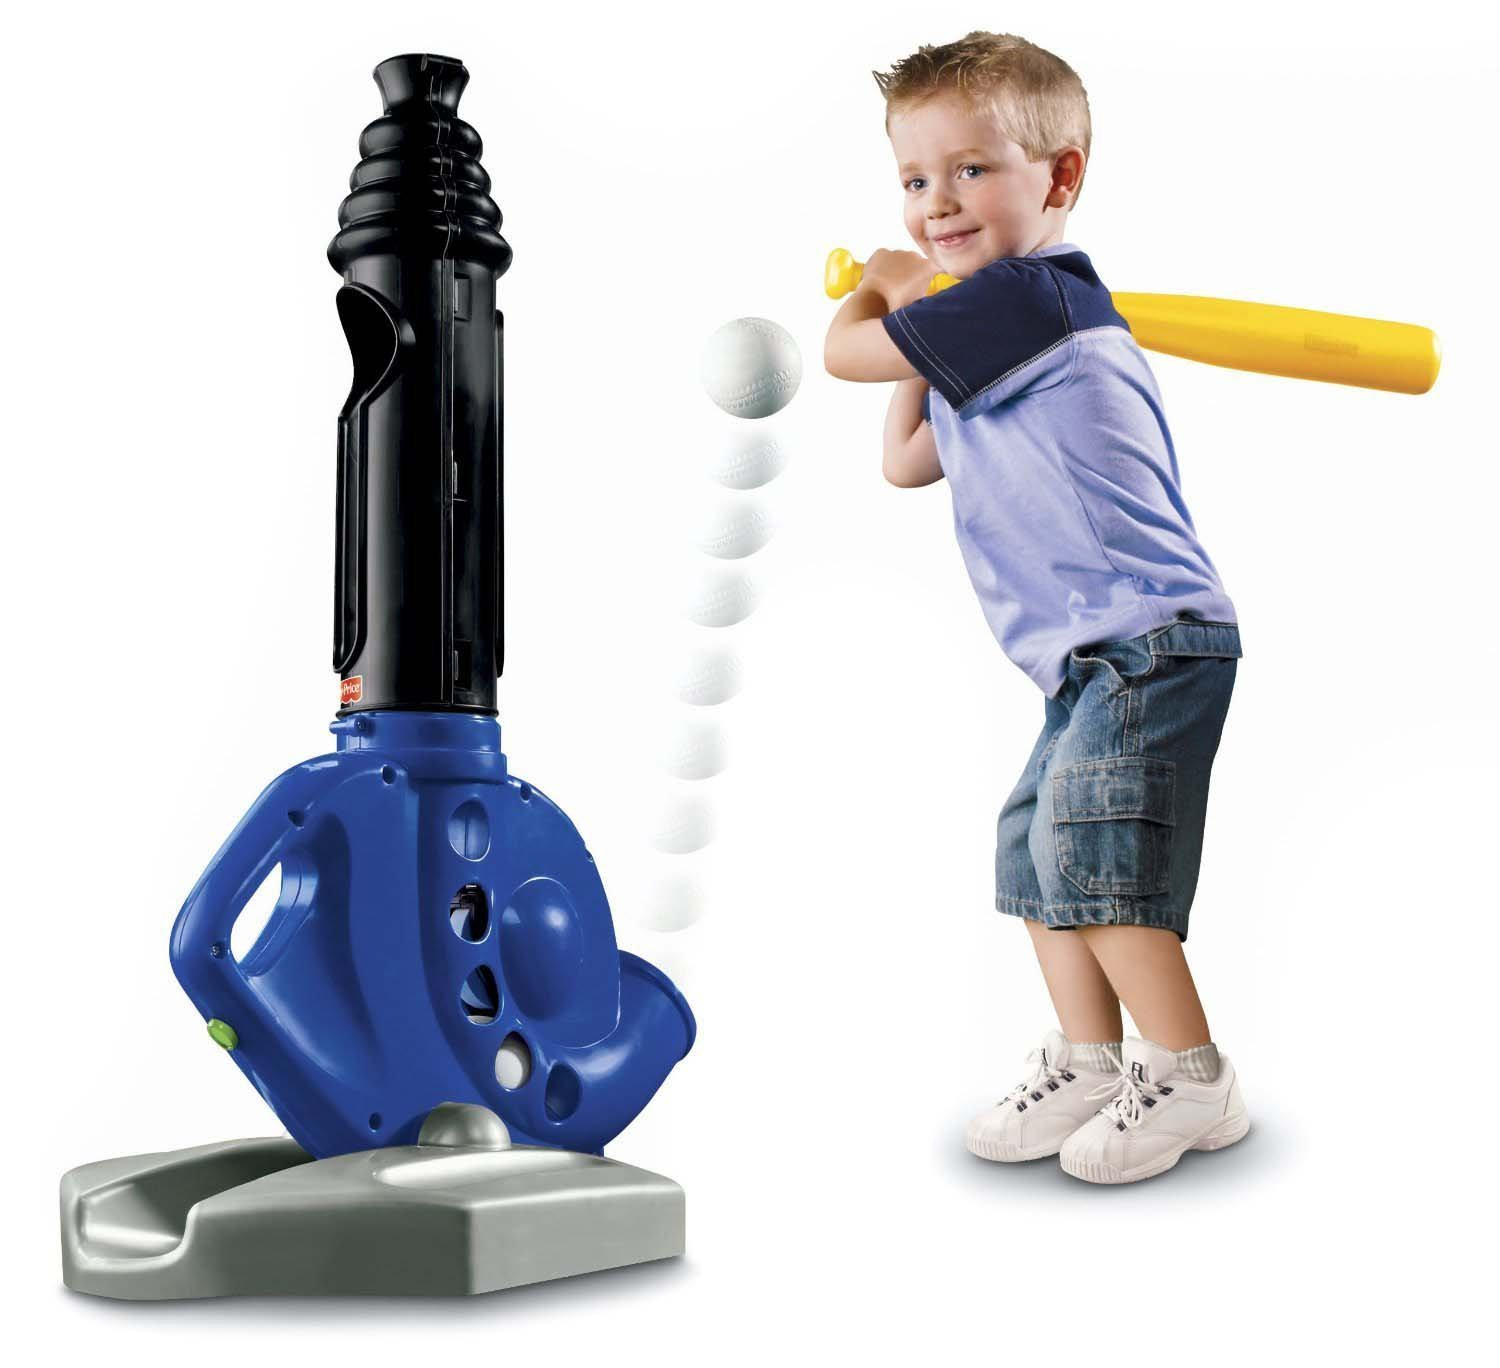 Popular Boy Toys Age 4 : Best gifts for year old boys in itsy bitsy fun